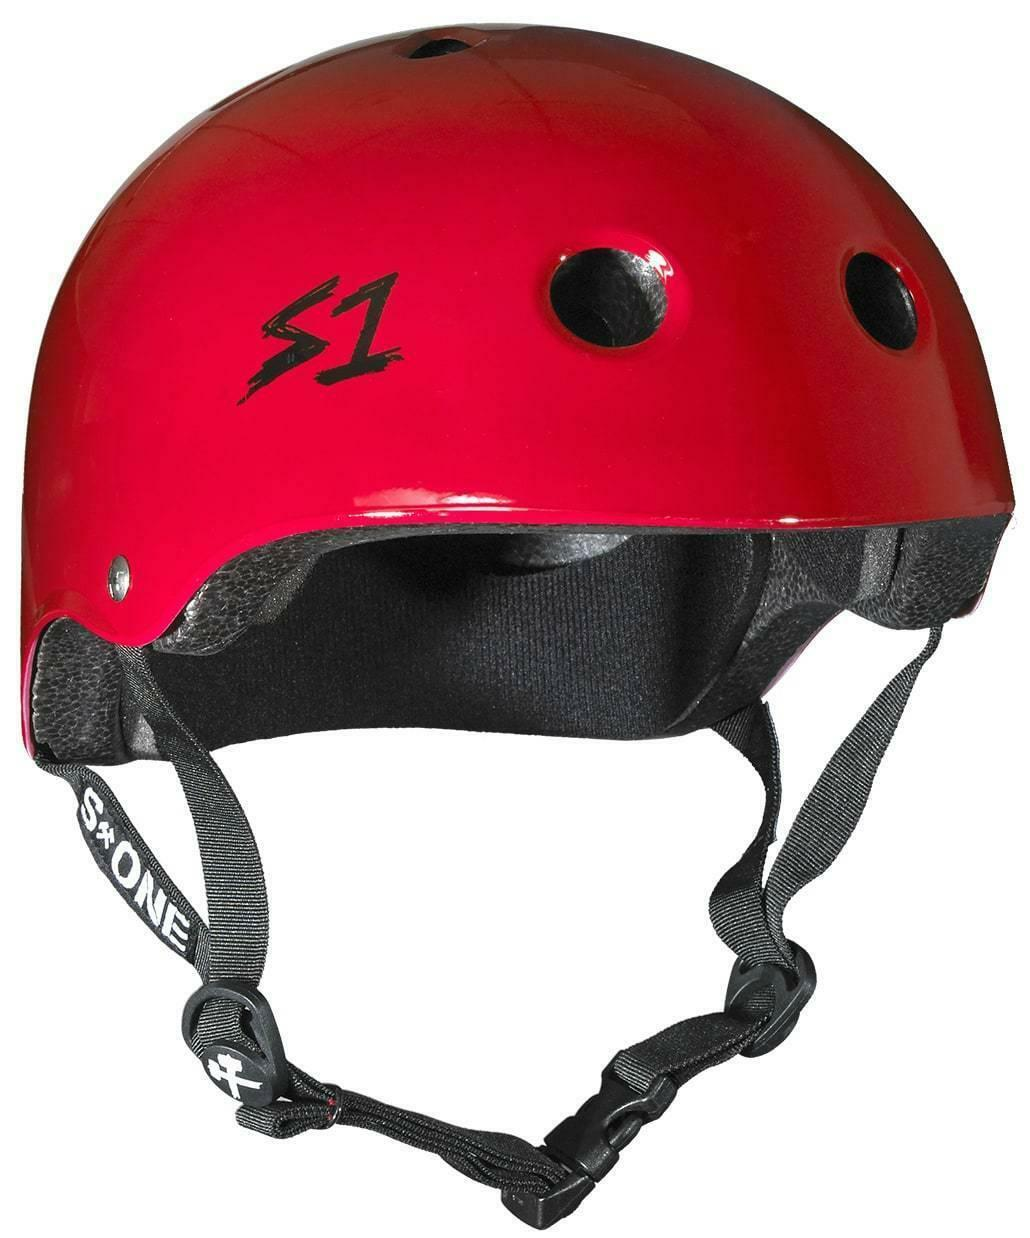 S1 Lifer Multi Impact Helmet -  Red Gloss  affordable